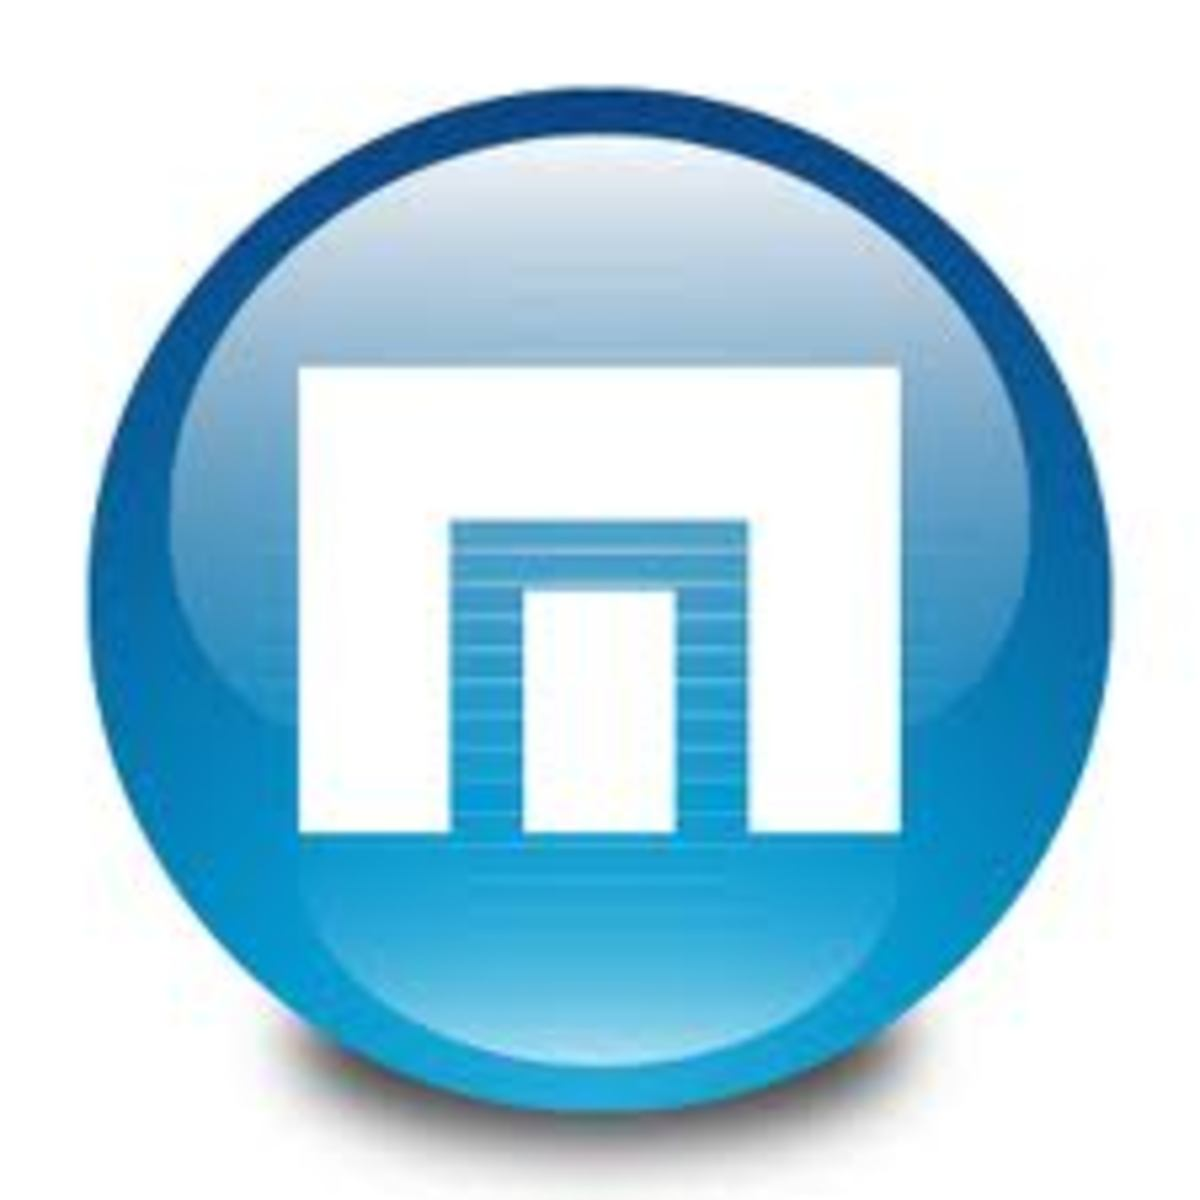 Maxthon Browser logo